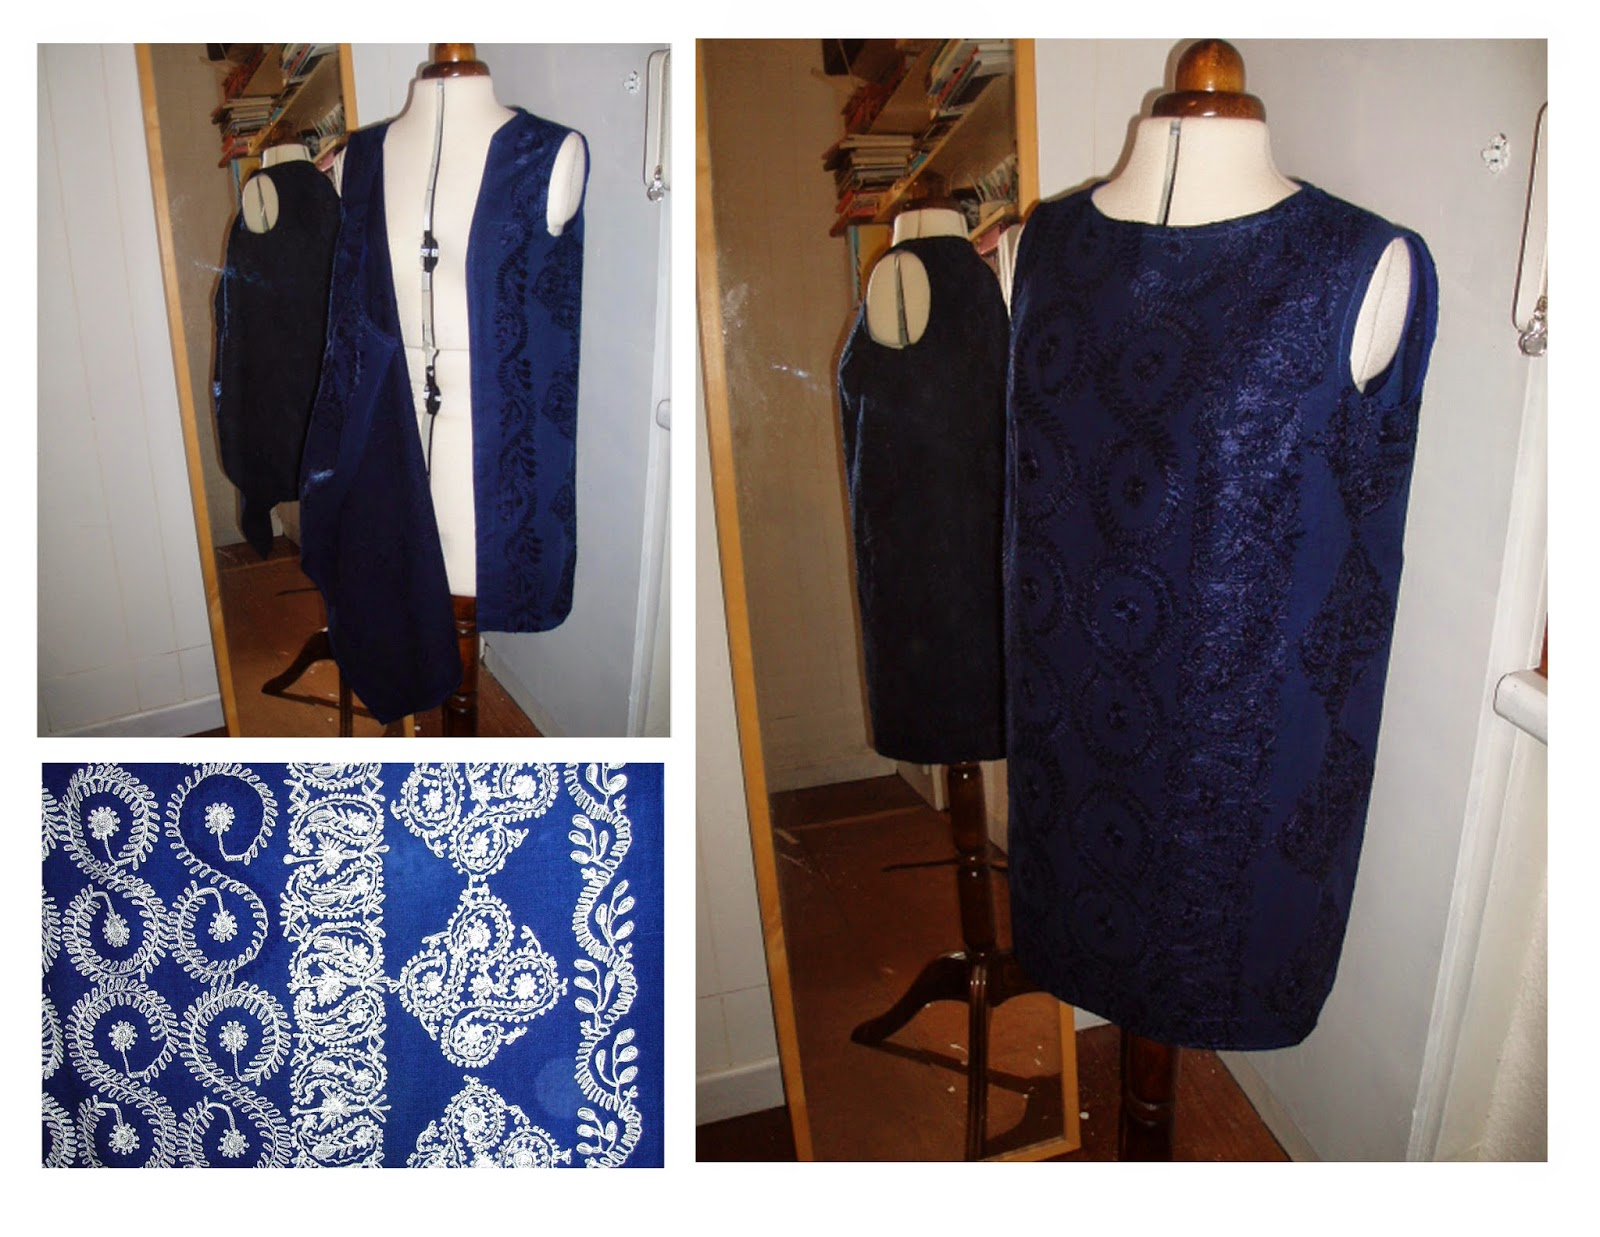 The 3 Armhole dress - table cloth to beach cover up